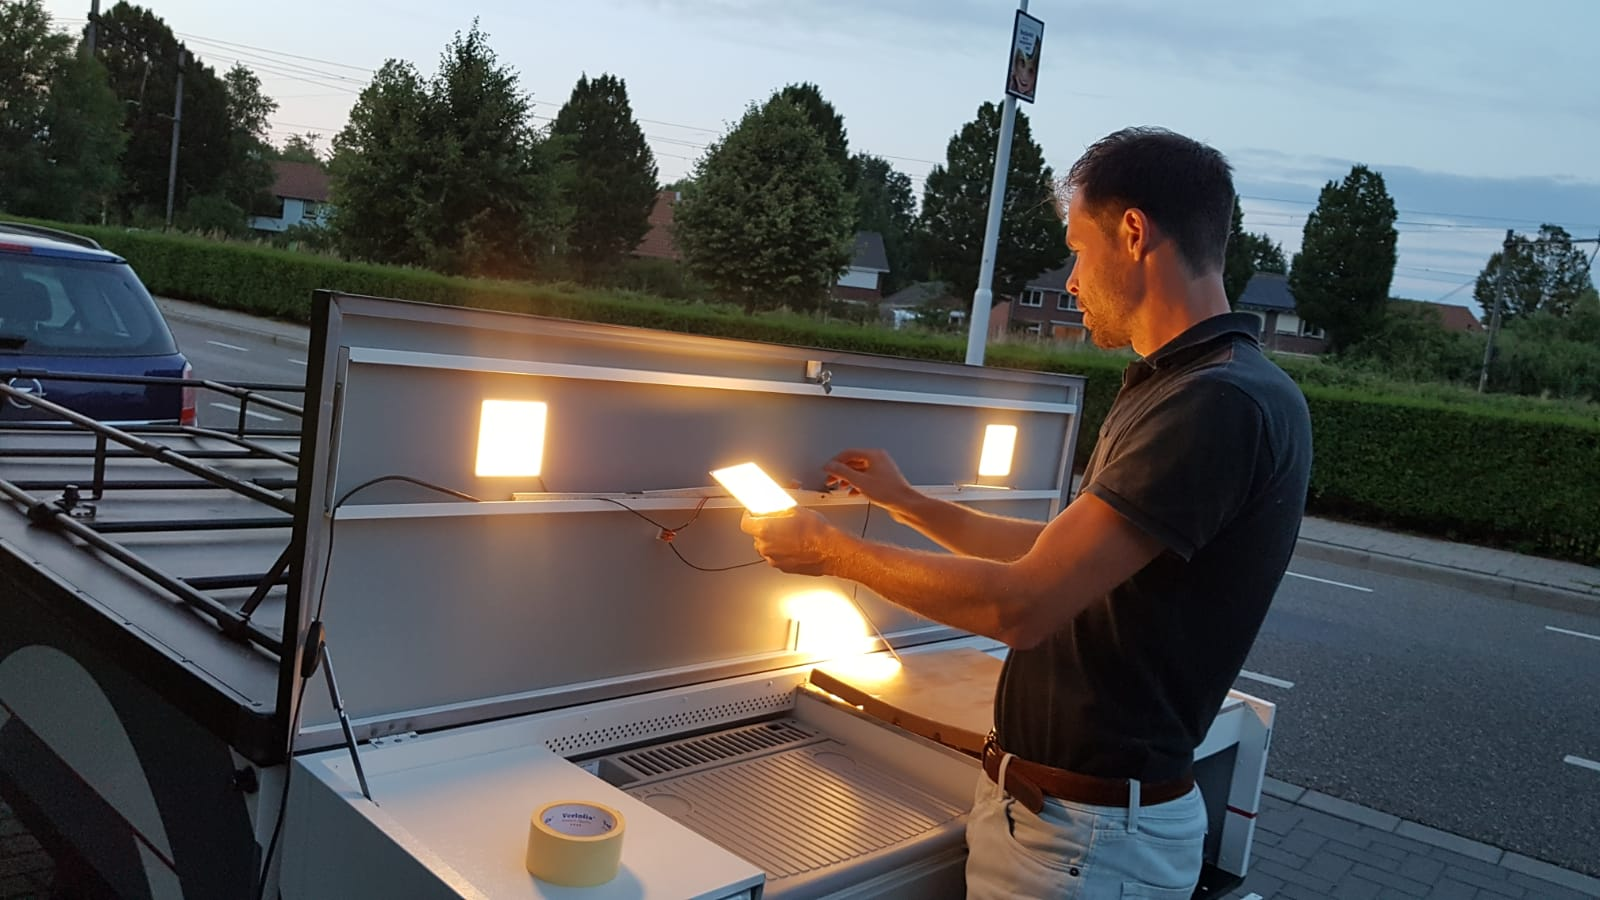 Image to demonstrate the installation of Hikari SQ LED panels in Combi-Camp tent trailer